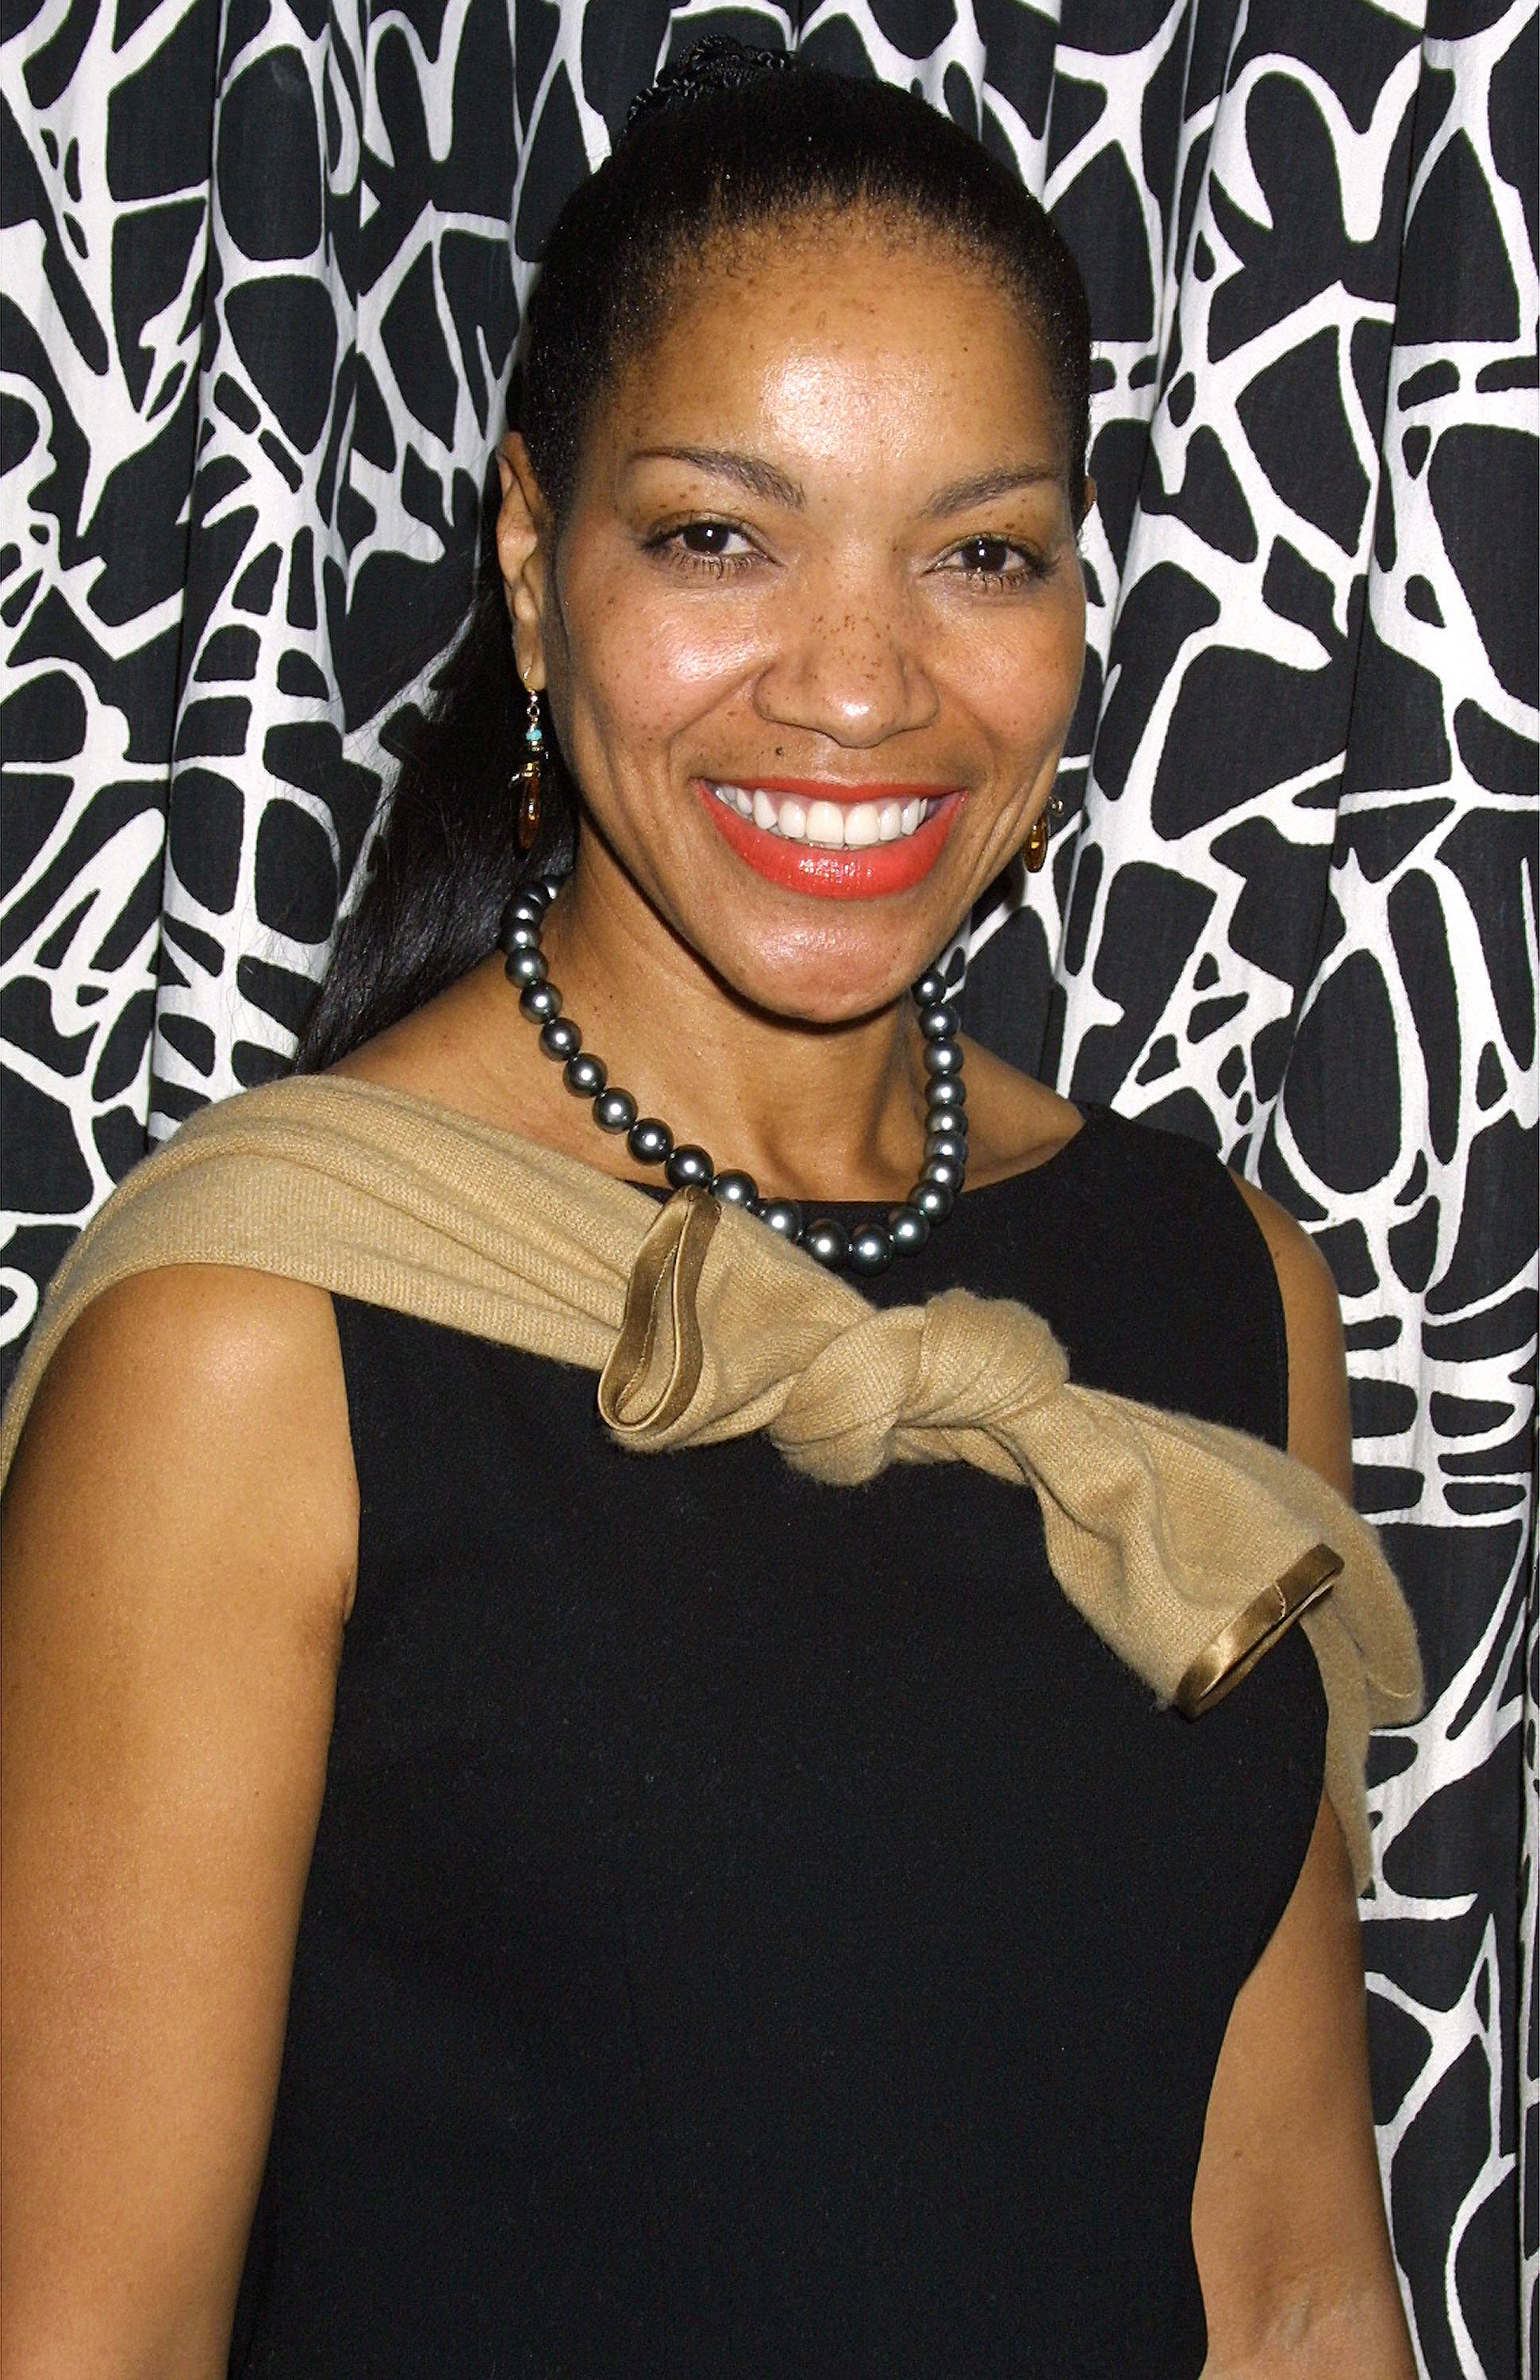 Grace Hightower in 2001.